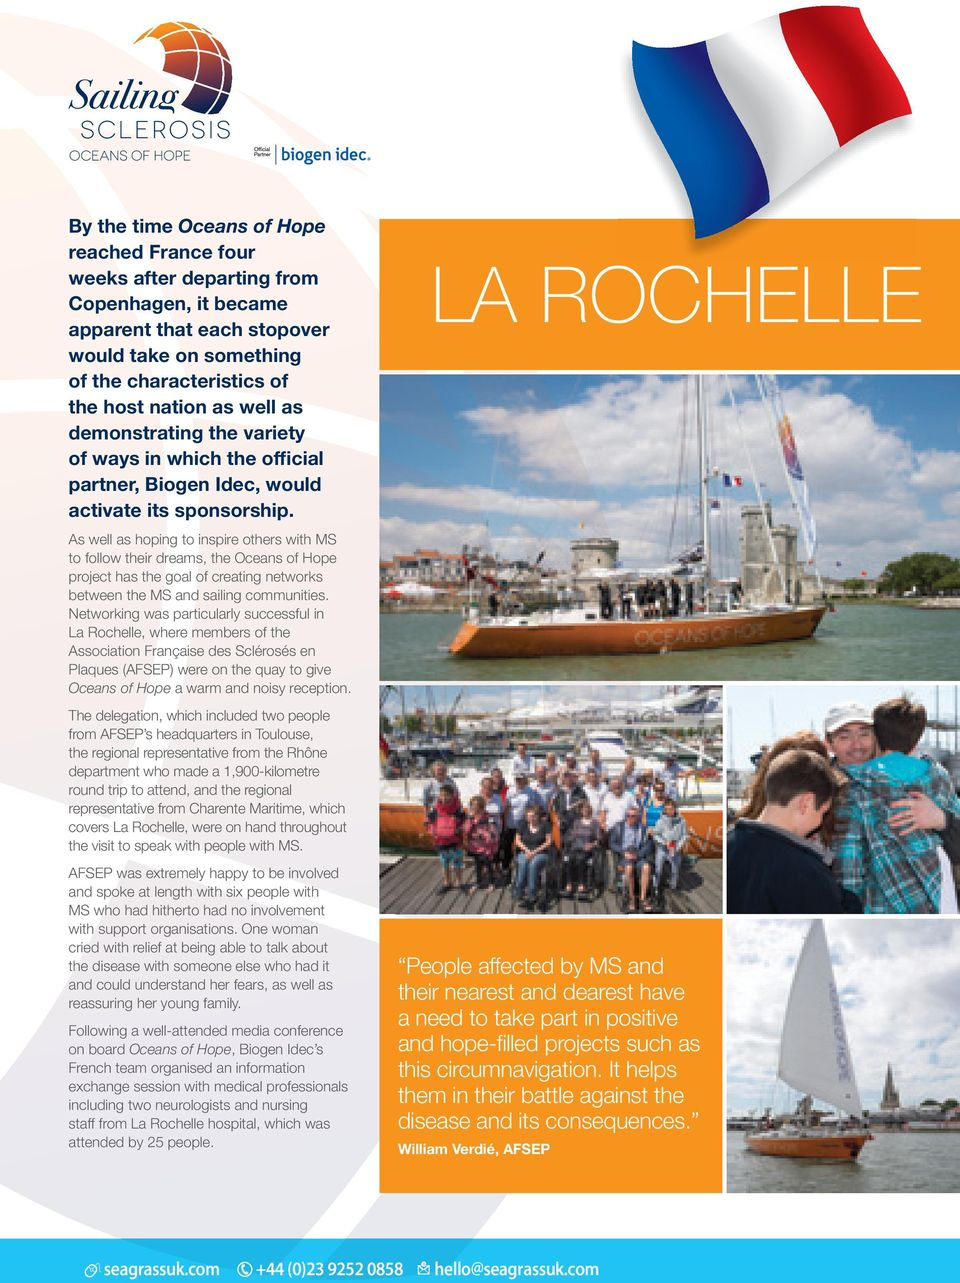 As well as hoping to inspire others with MS to follow their dreams, the Oceans of Hope project has the goal of creating networks between the MS and sailing communities.